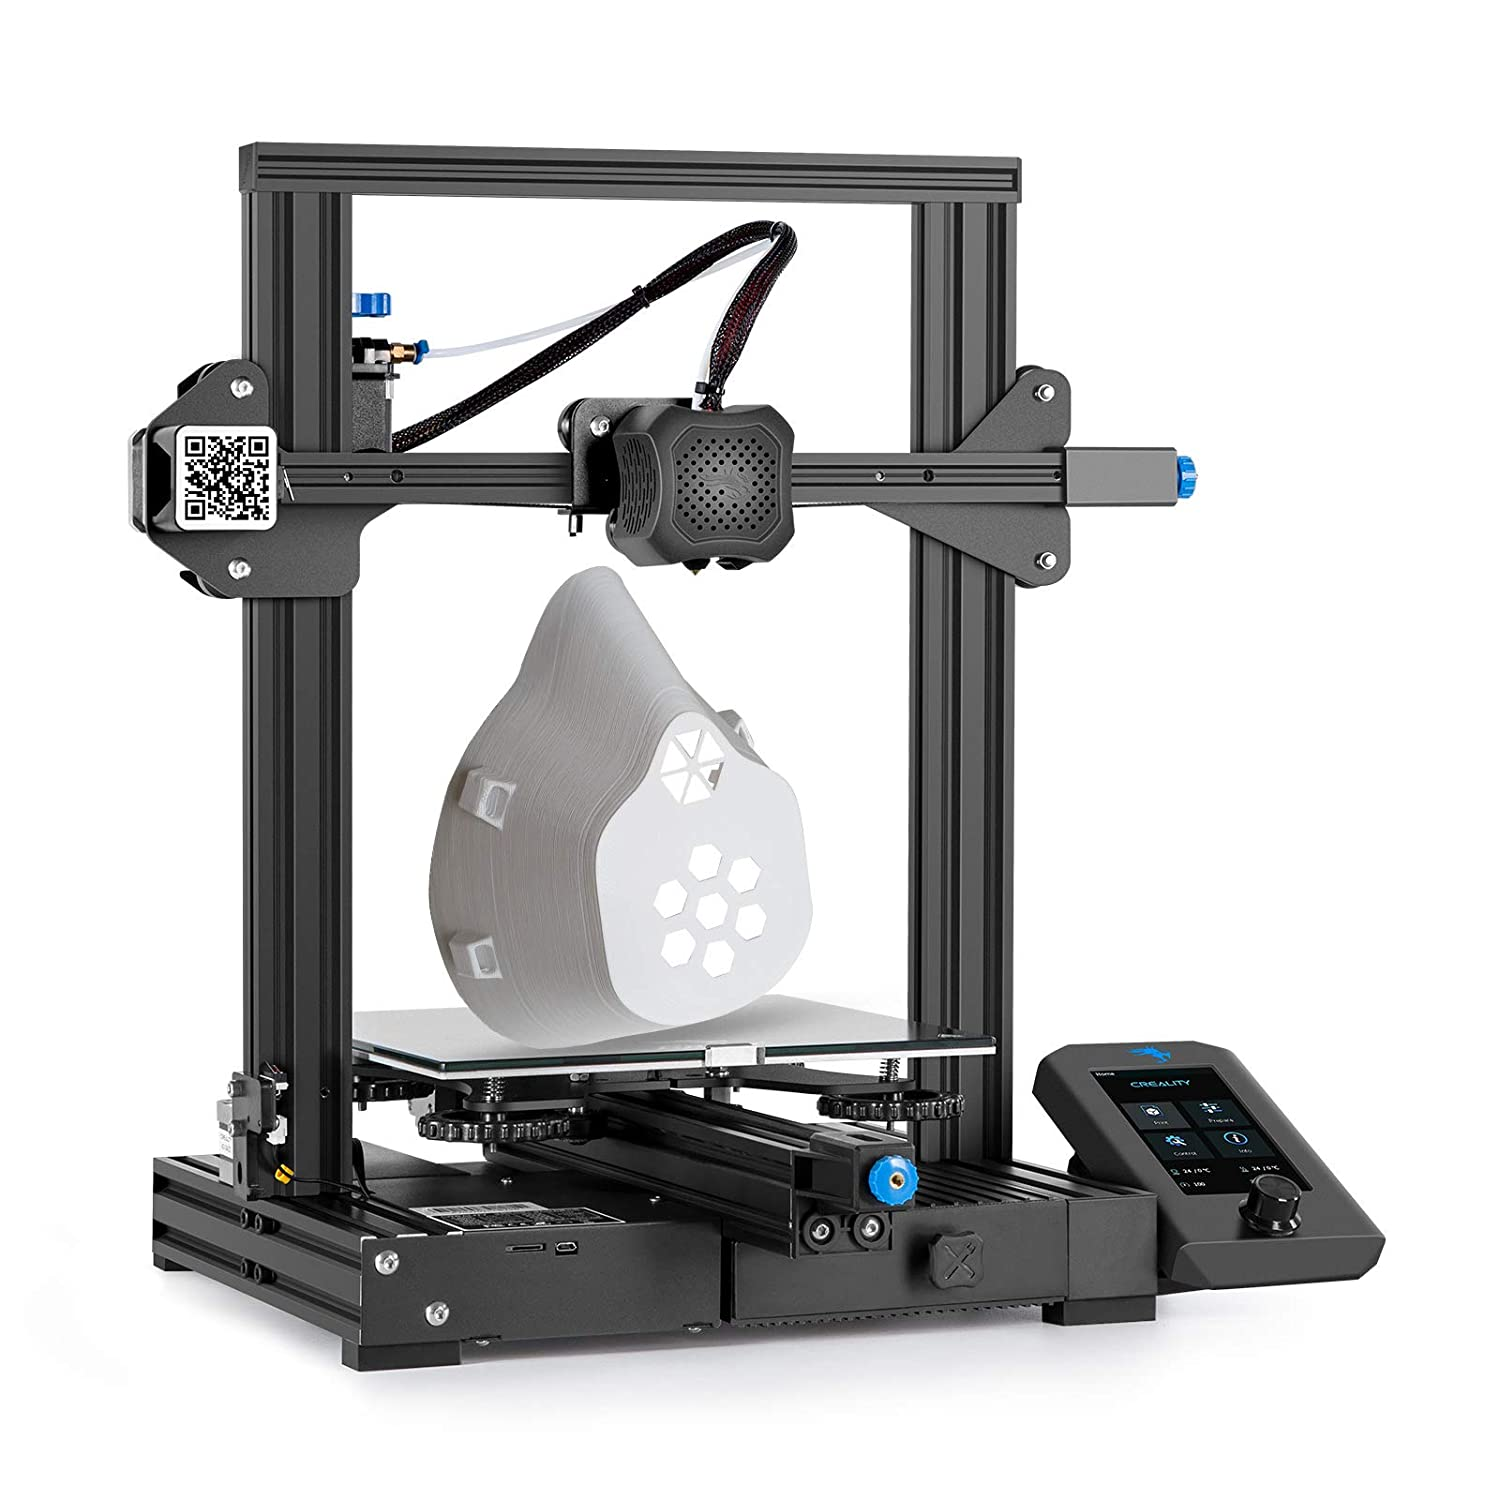 Creality Ender 3 V2 3D Printer by Rabate with Silent Motherboard Carborundum Glass Platform and Resume Printing Function 220x220x250mm